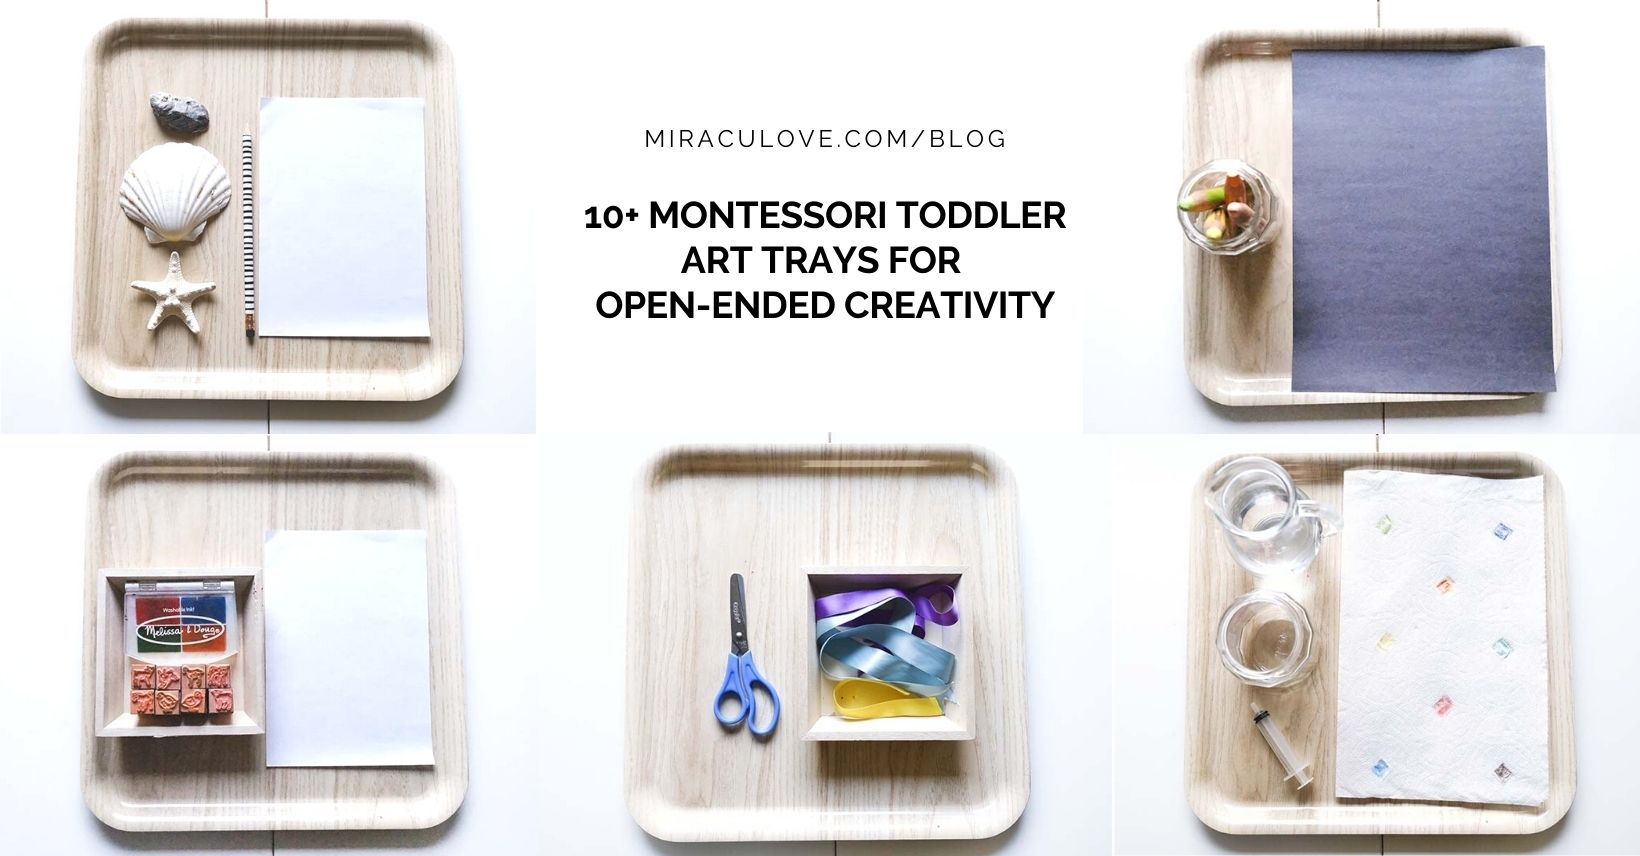 10+ Montessori Toddler Art Trays for Open-ended Creativity